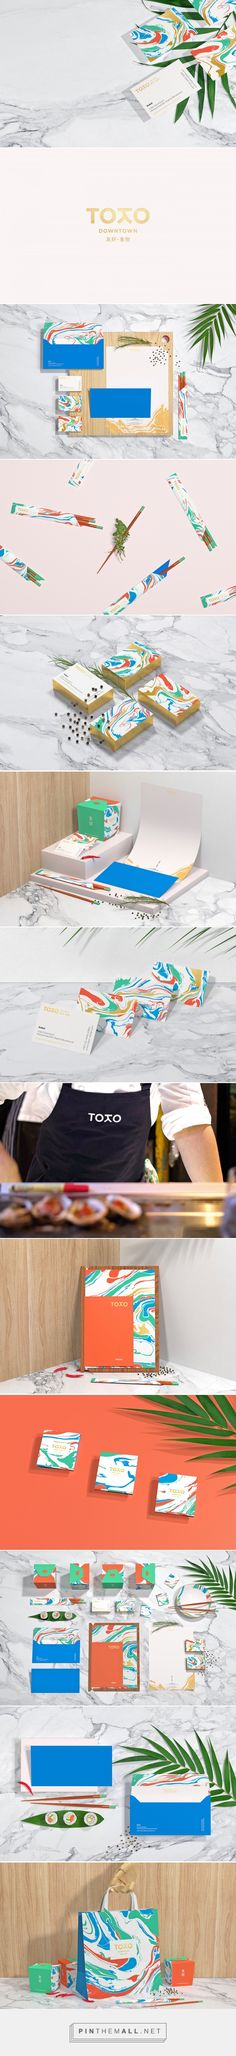 Toko Downtown. Dubai on Behance... - a grouped images picture - Pin Them All